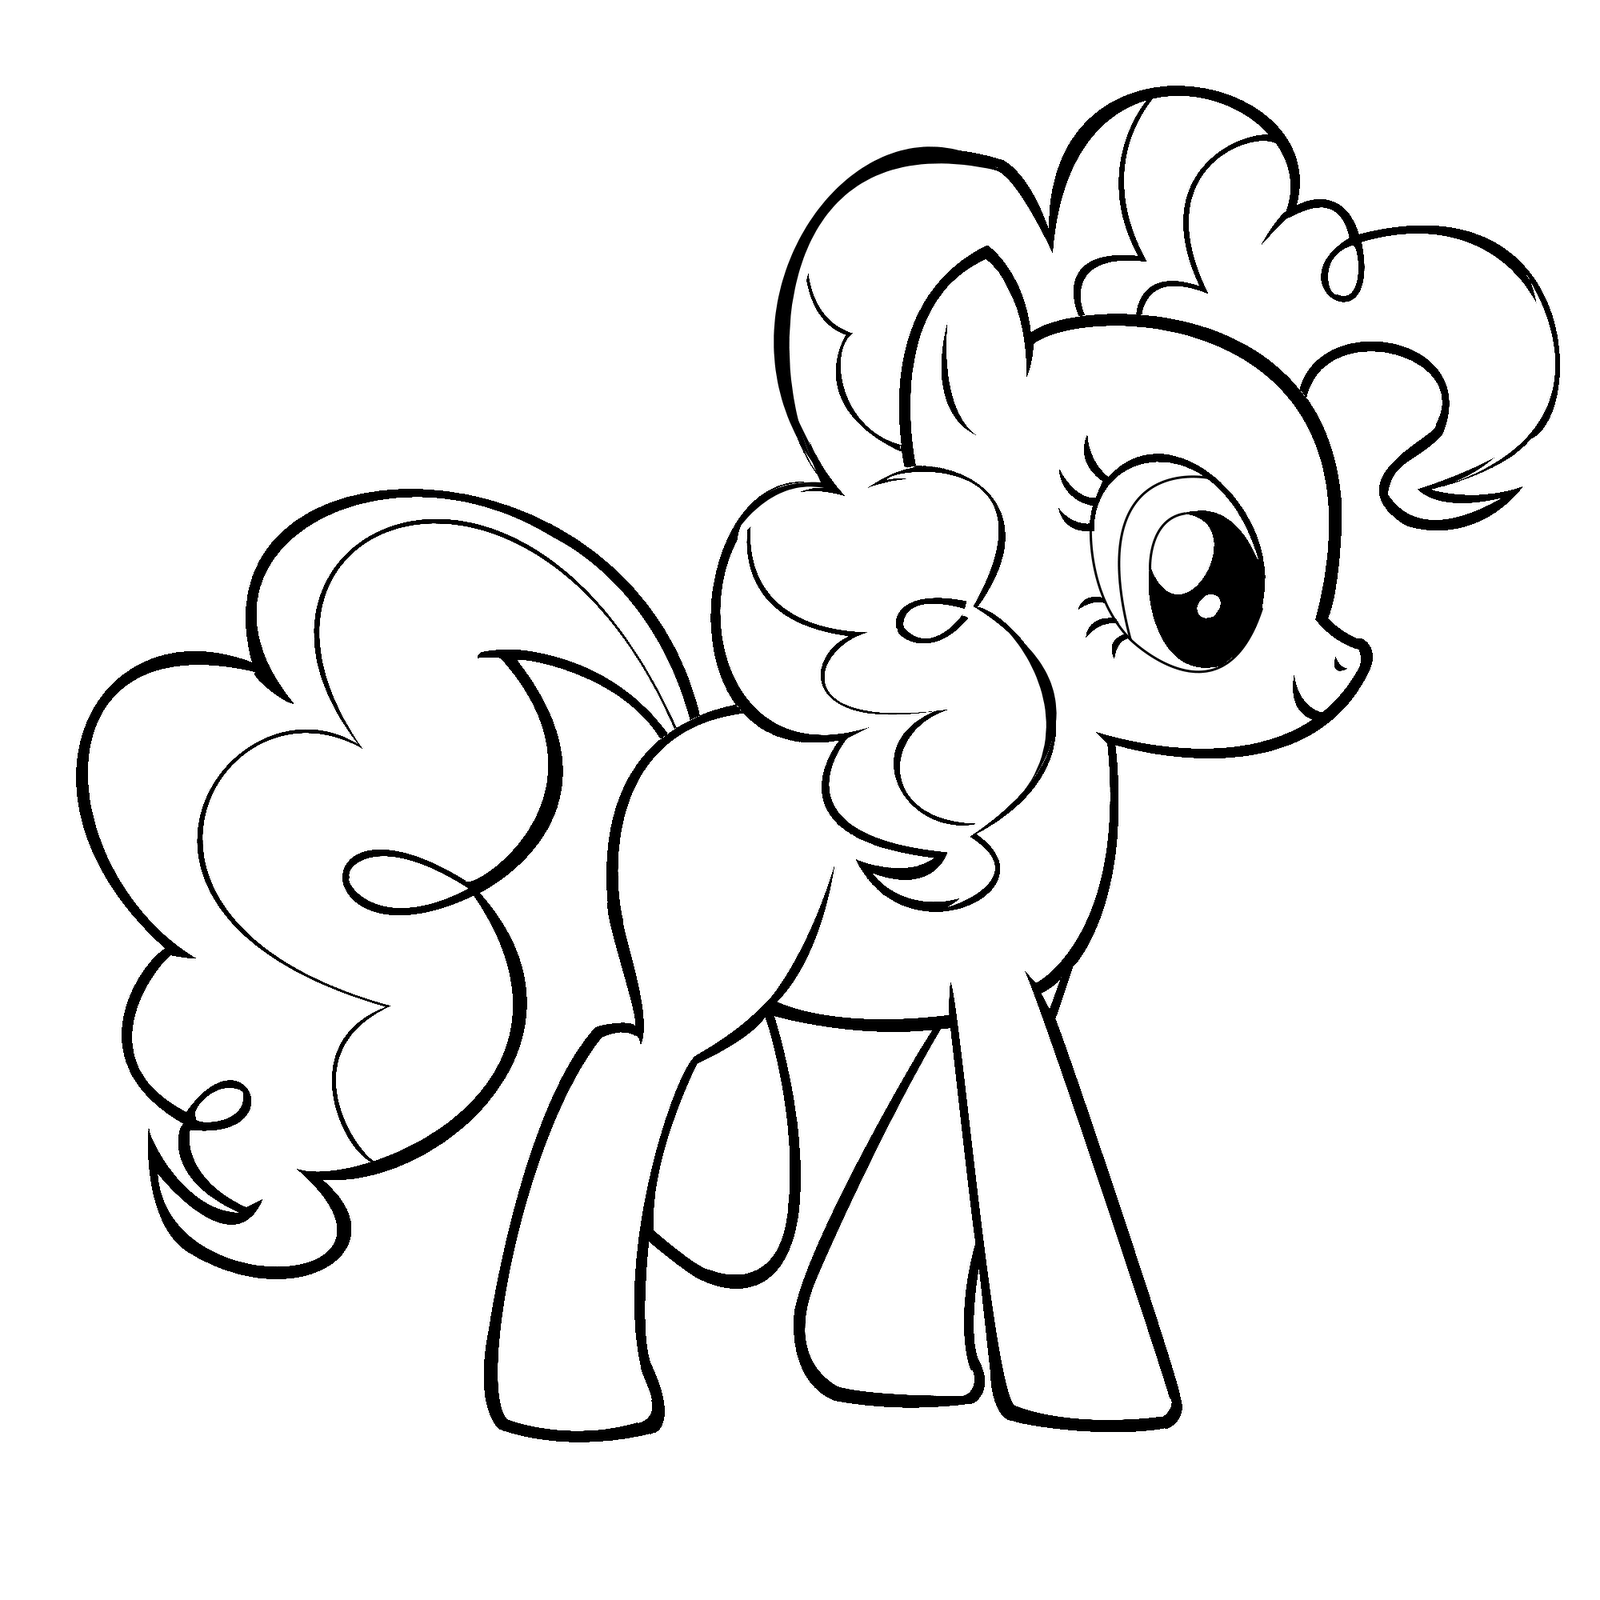 my little pony to color my little pony to color pony little to color my